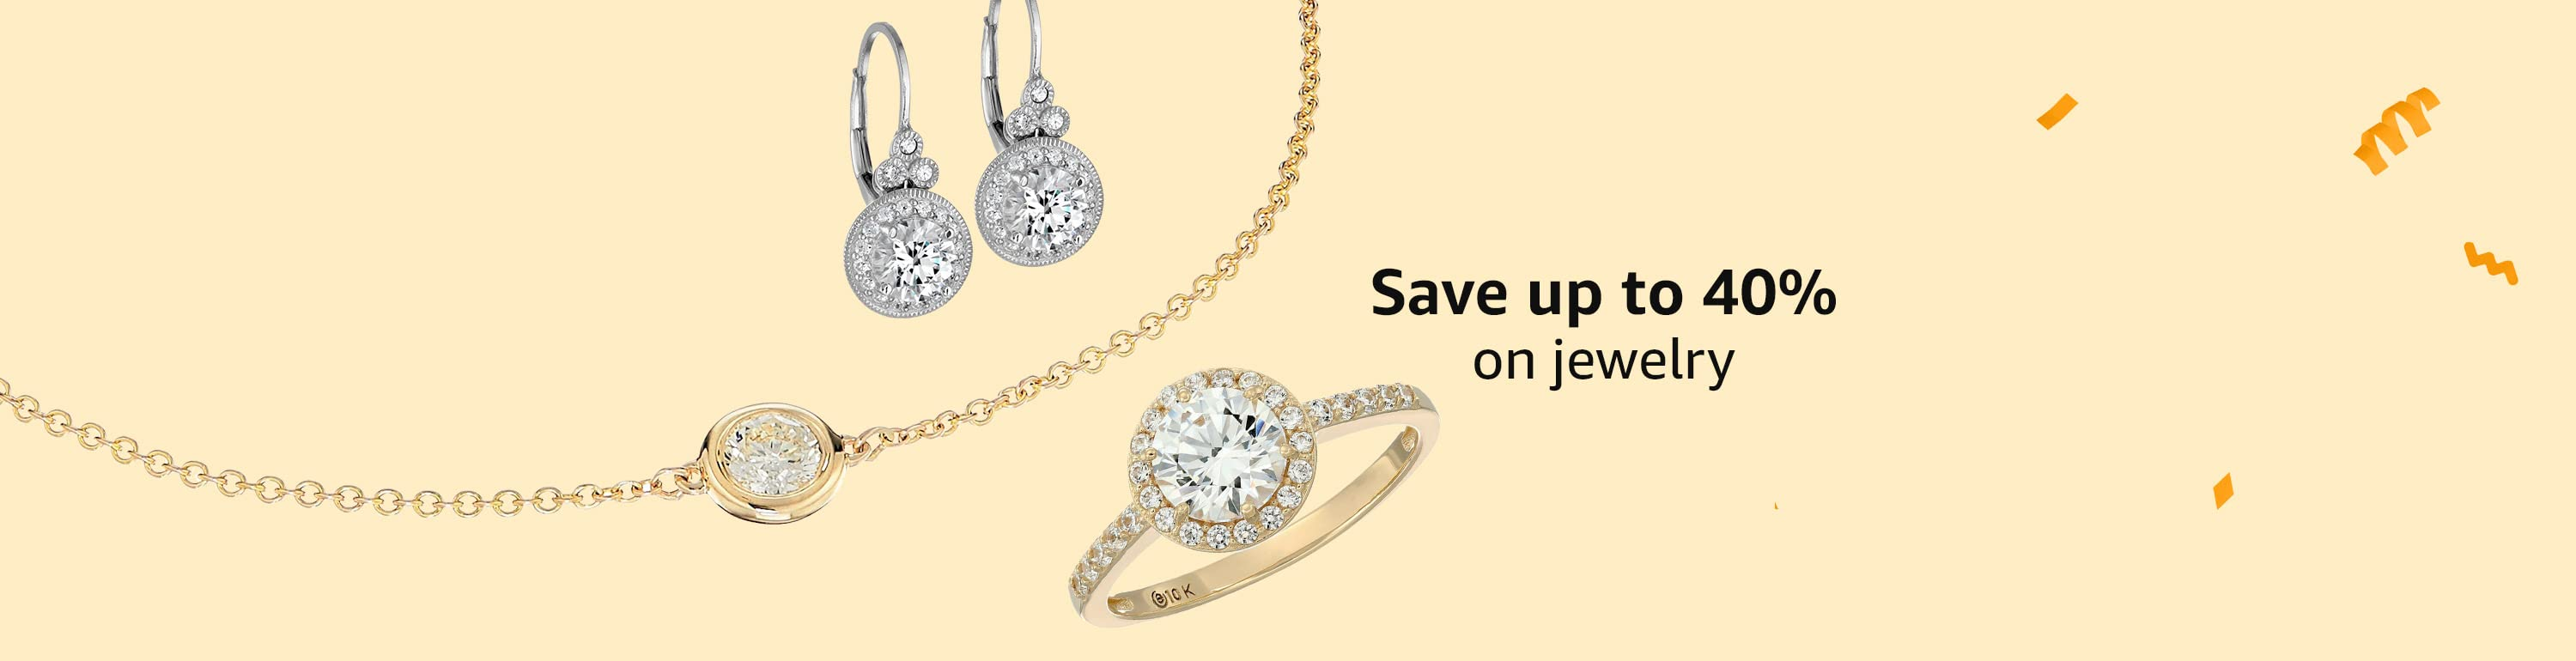 Save up to 40% on jewelry